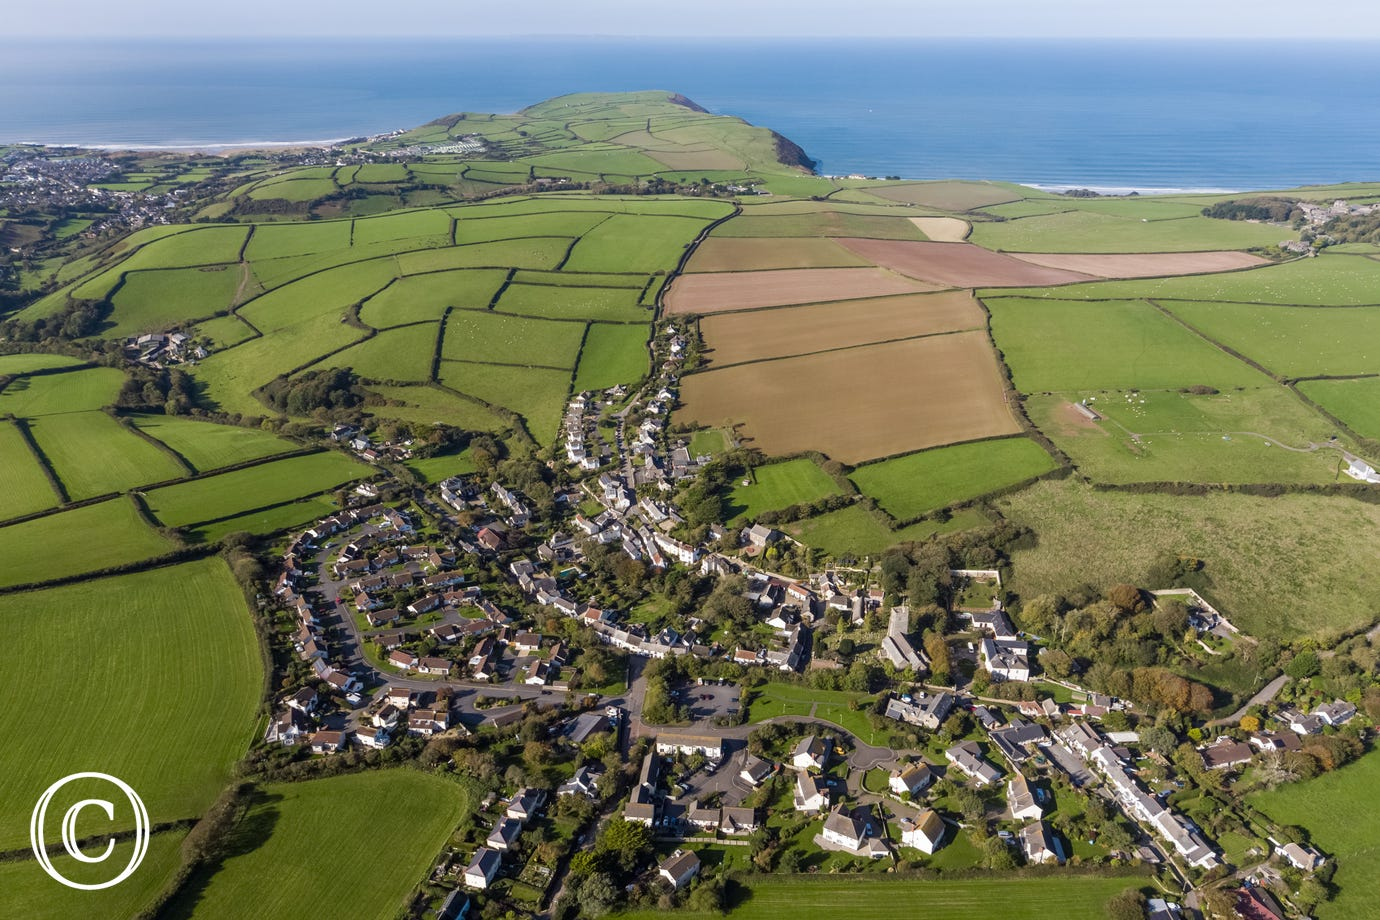 A aerial view of Georgeham village which has 2 very good pubs and a local shop